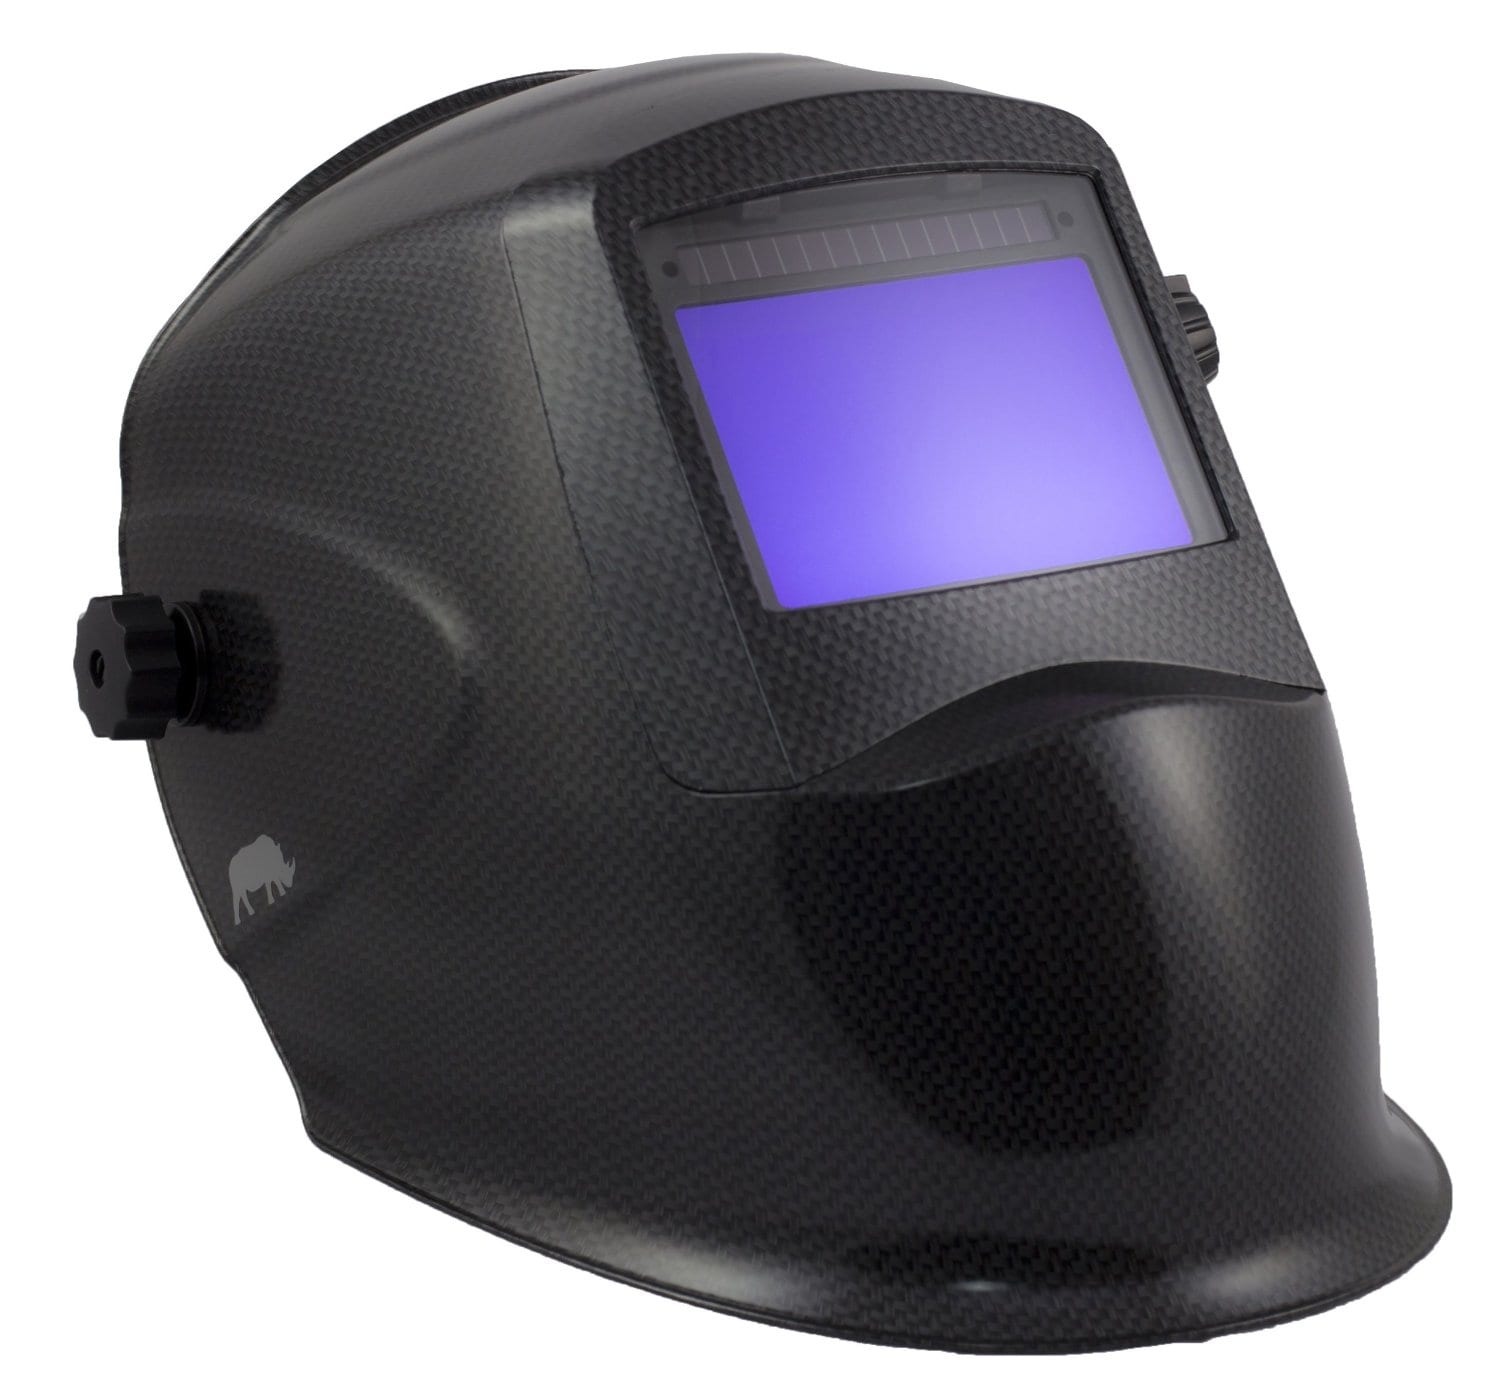 Rhino Large View + Grind - Auto Darkening Welding Helmet review